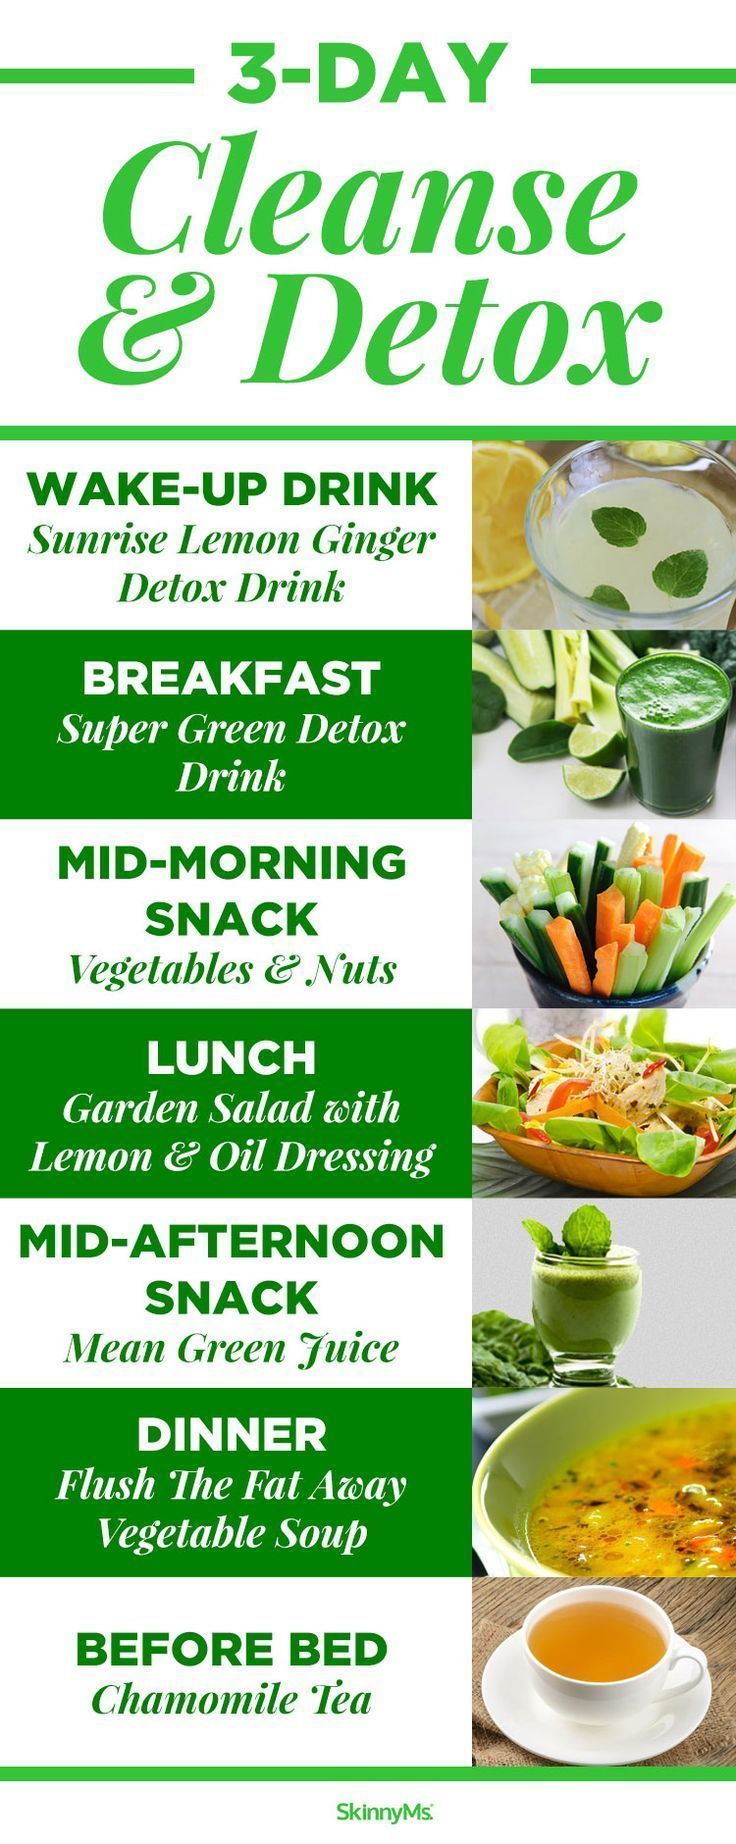 When I need to recharge my body I love the 3 Day Cleanse Detox...it is amazing!| Weight Loss Cleanse | Detox Cleanse Diet #CleansingDiet